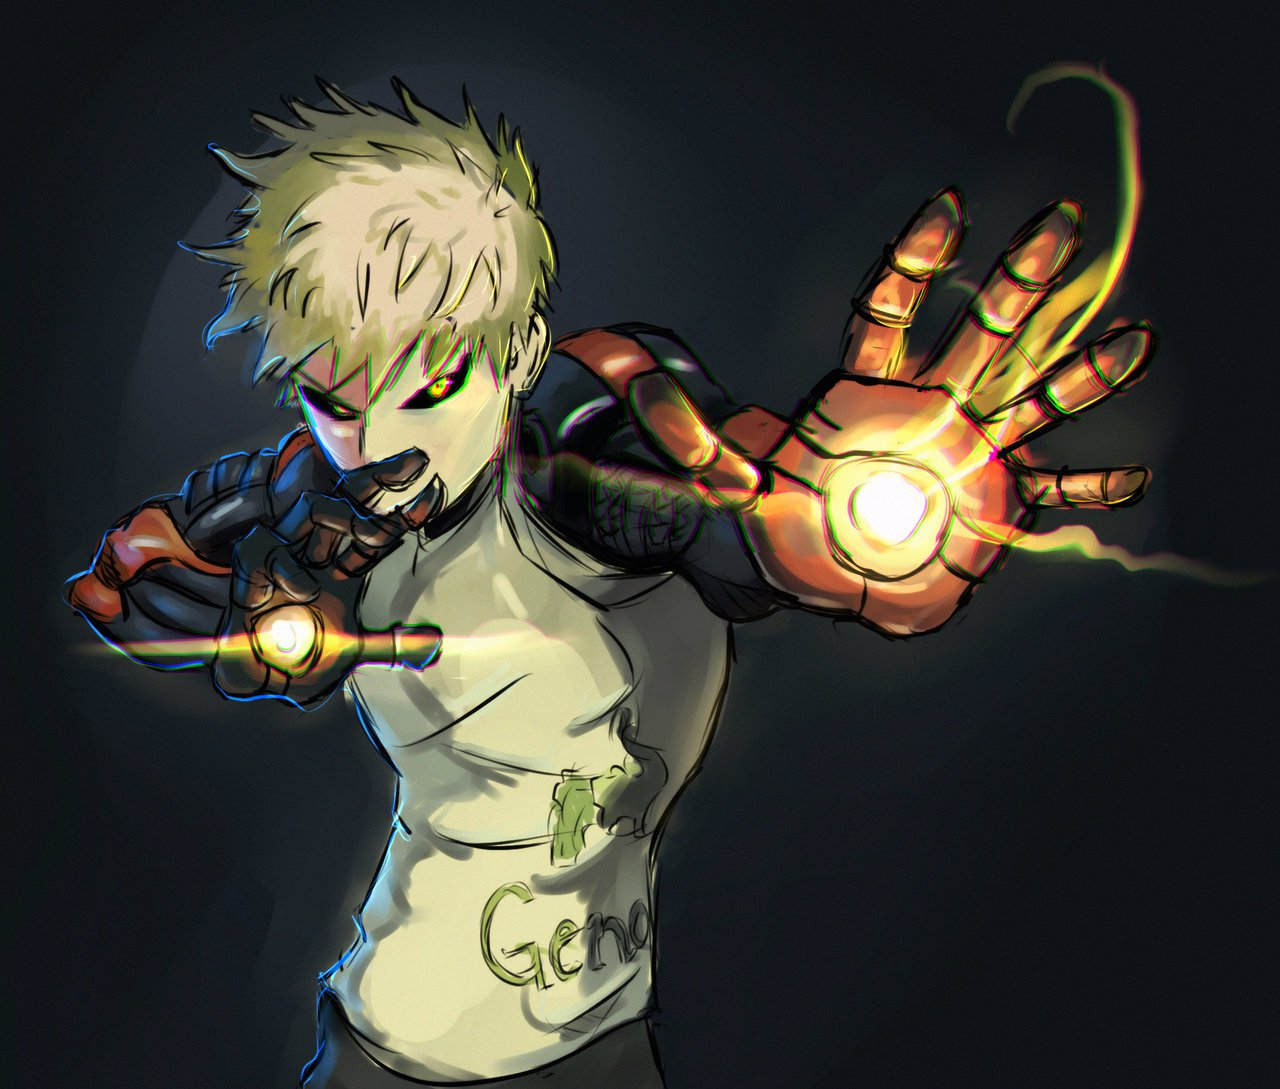 Free Download Genos Cyborg One Punch Man Wallpaper Hd Download Is